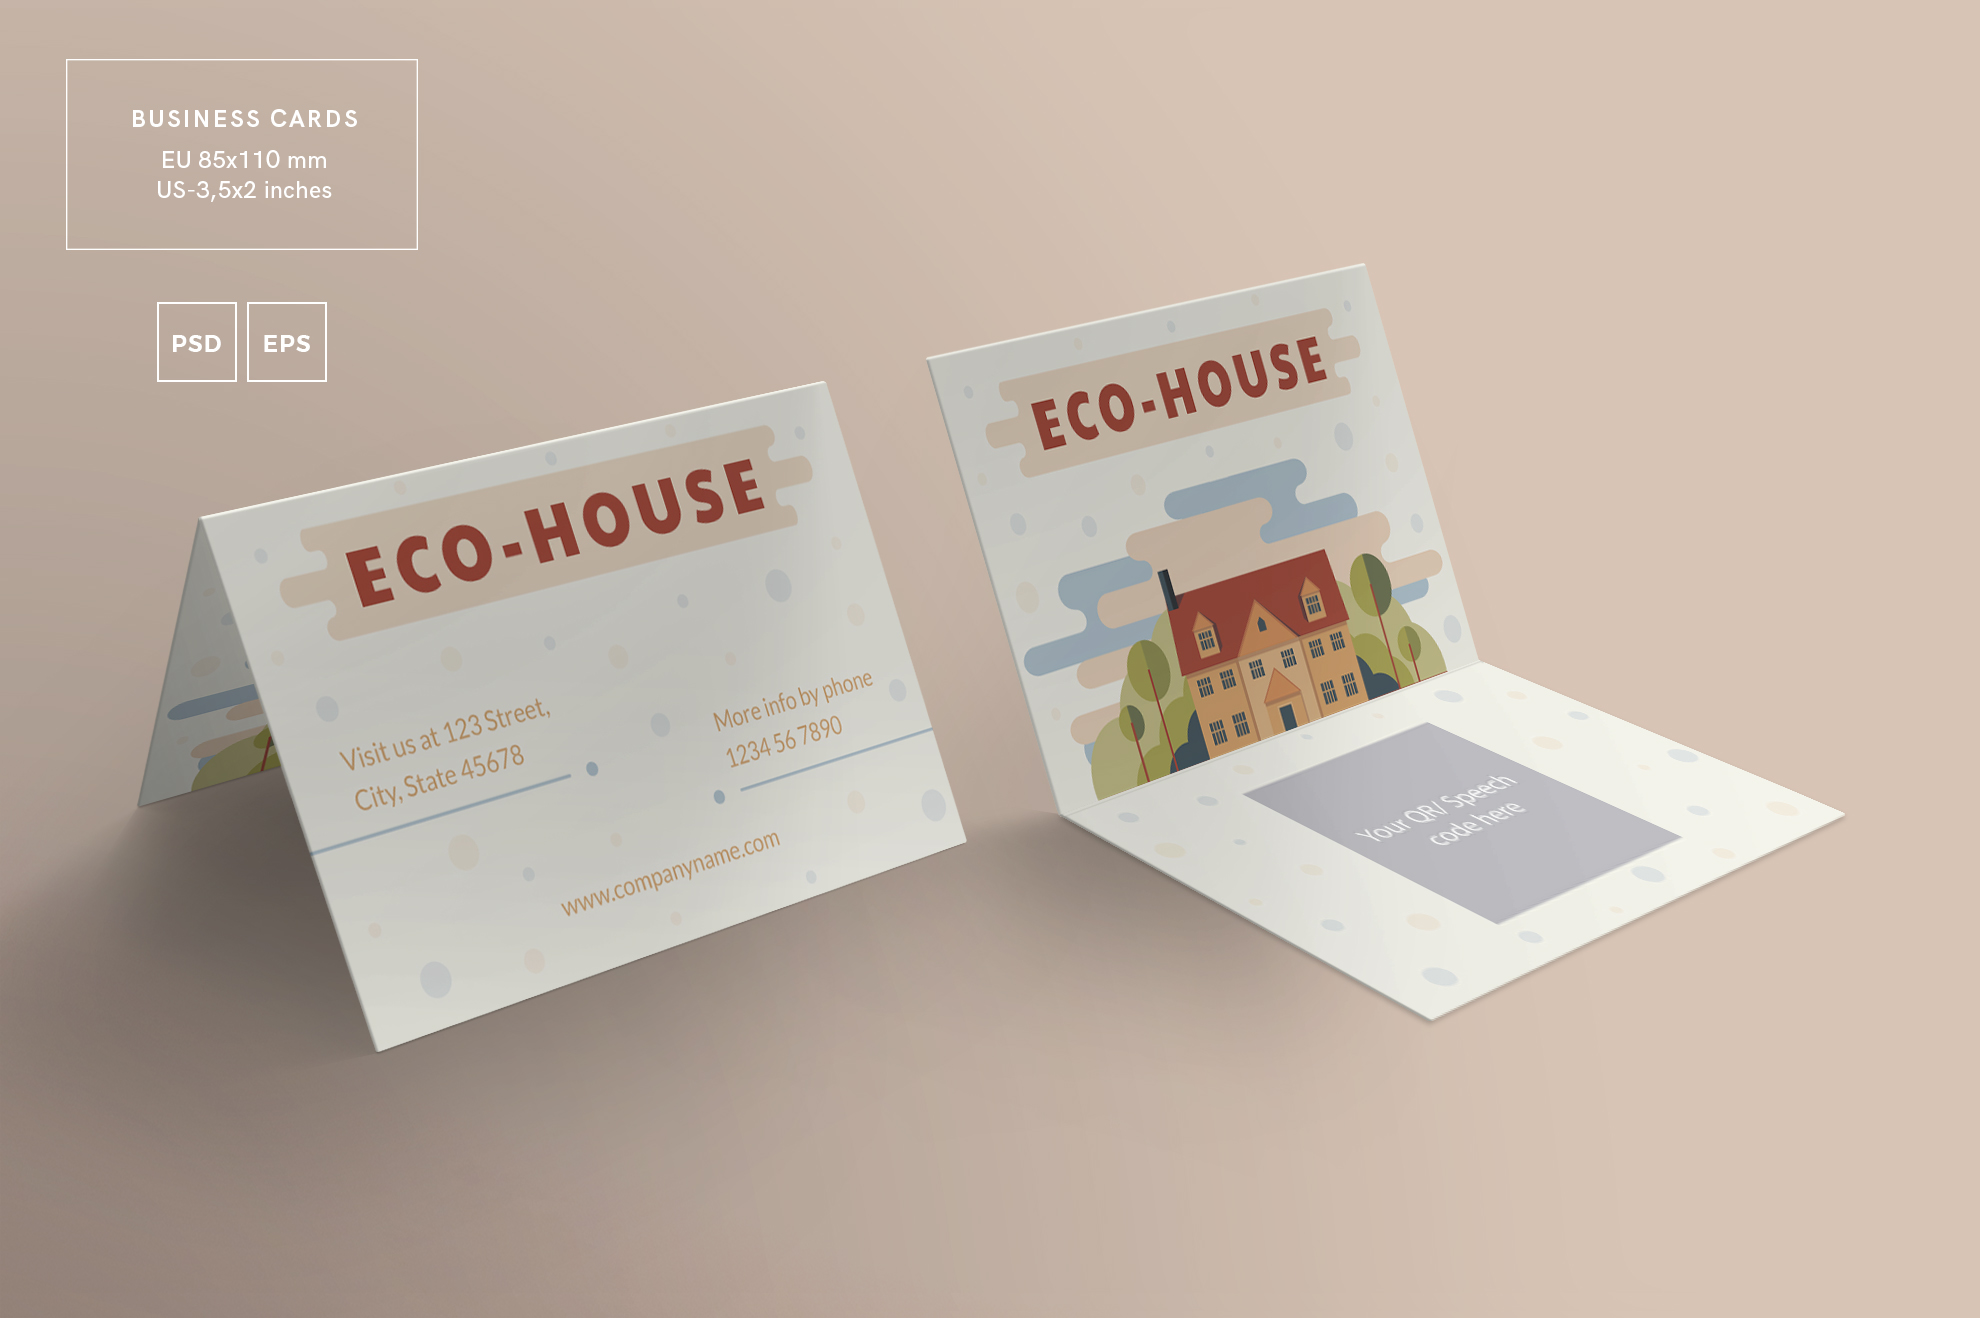 Eco house business card design template design bundles eco house business card design templates kit example image 3 colourmoves